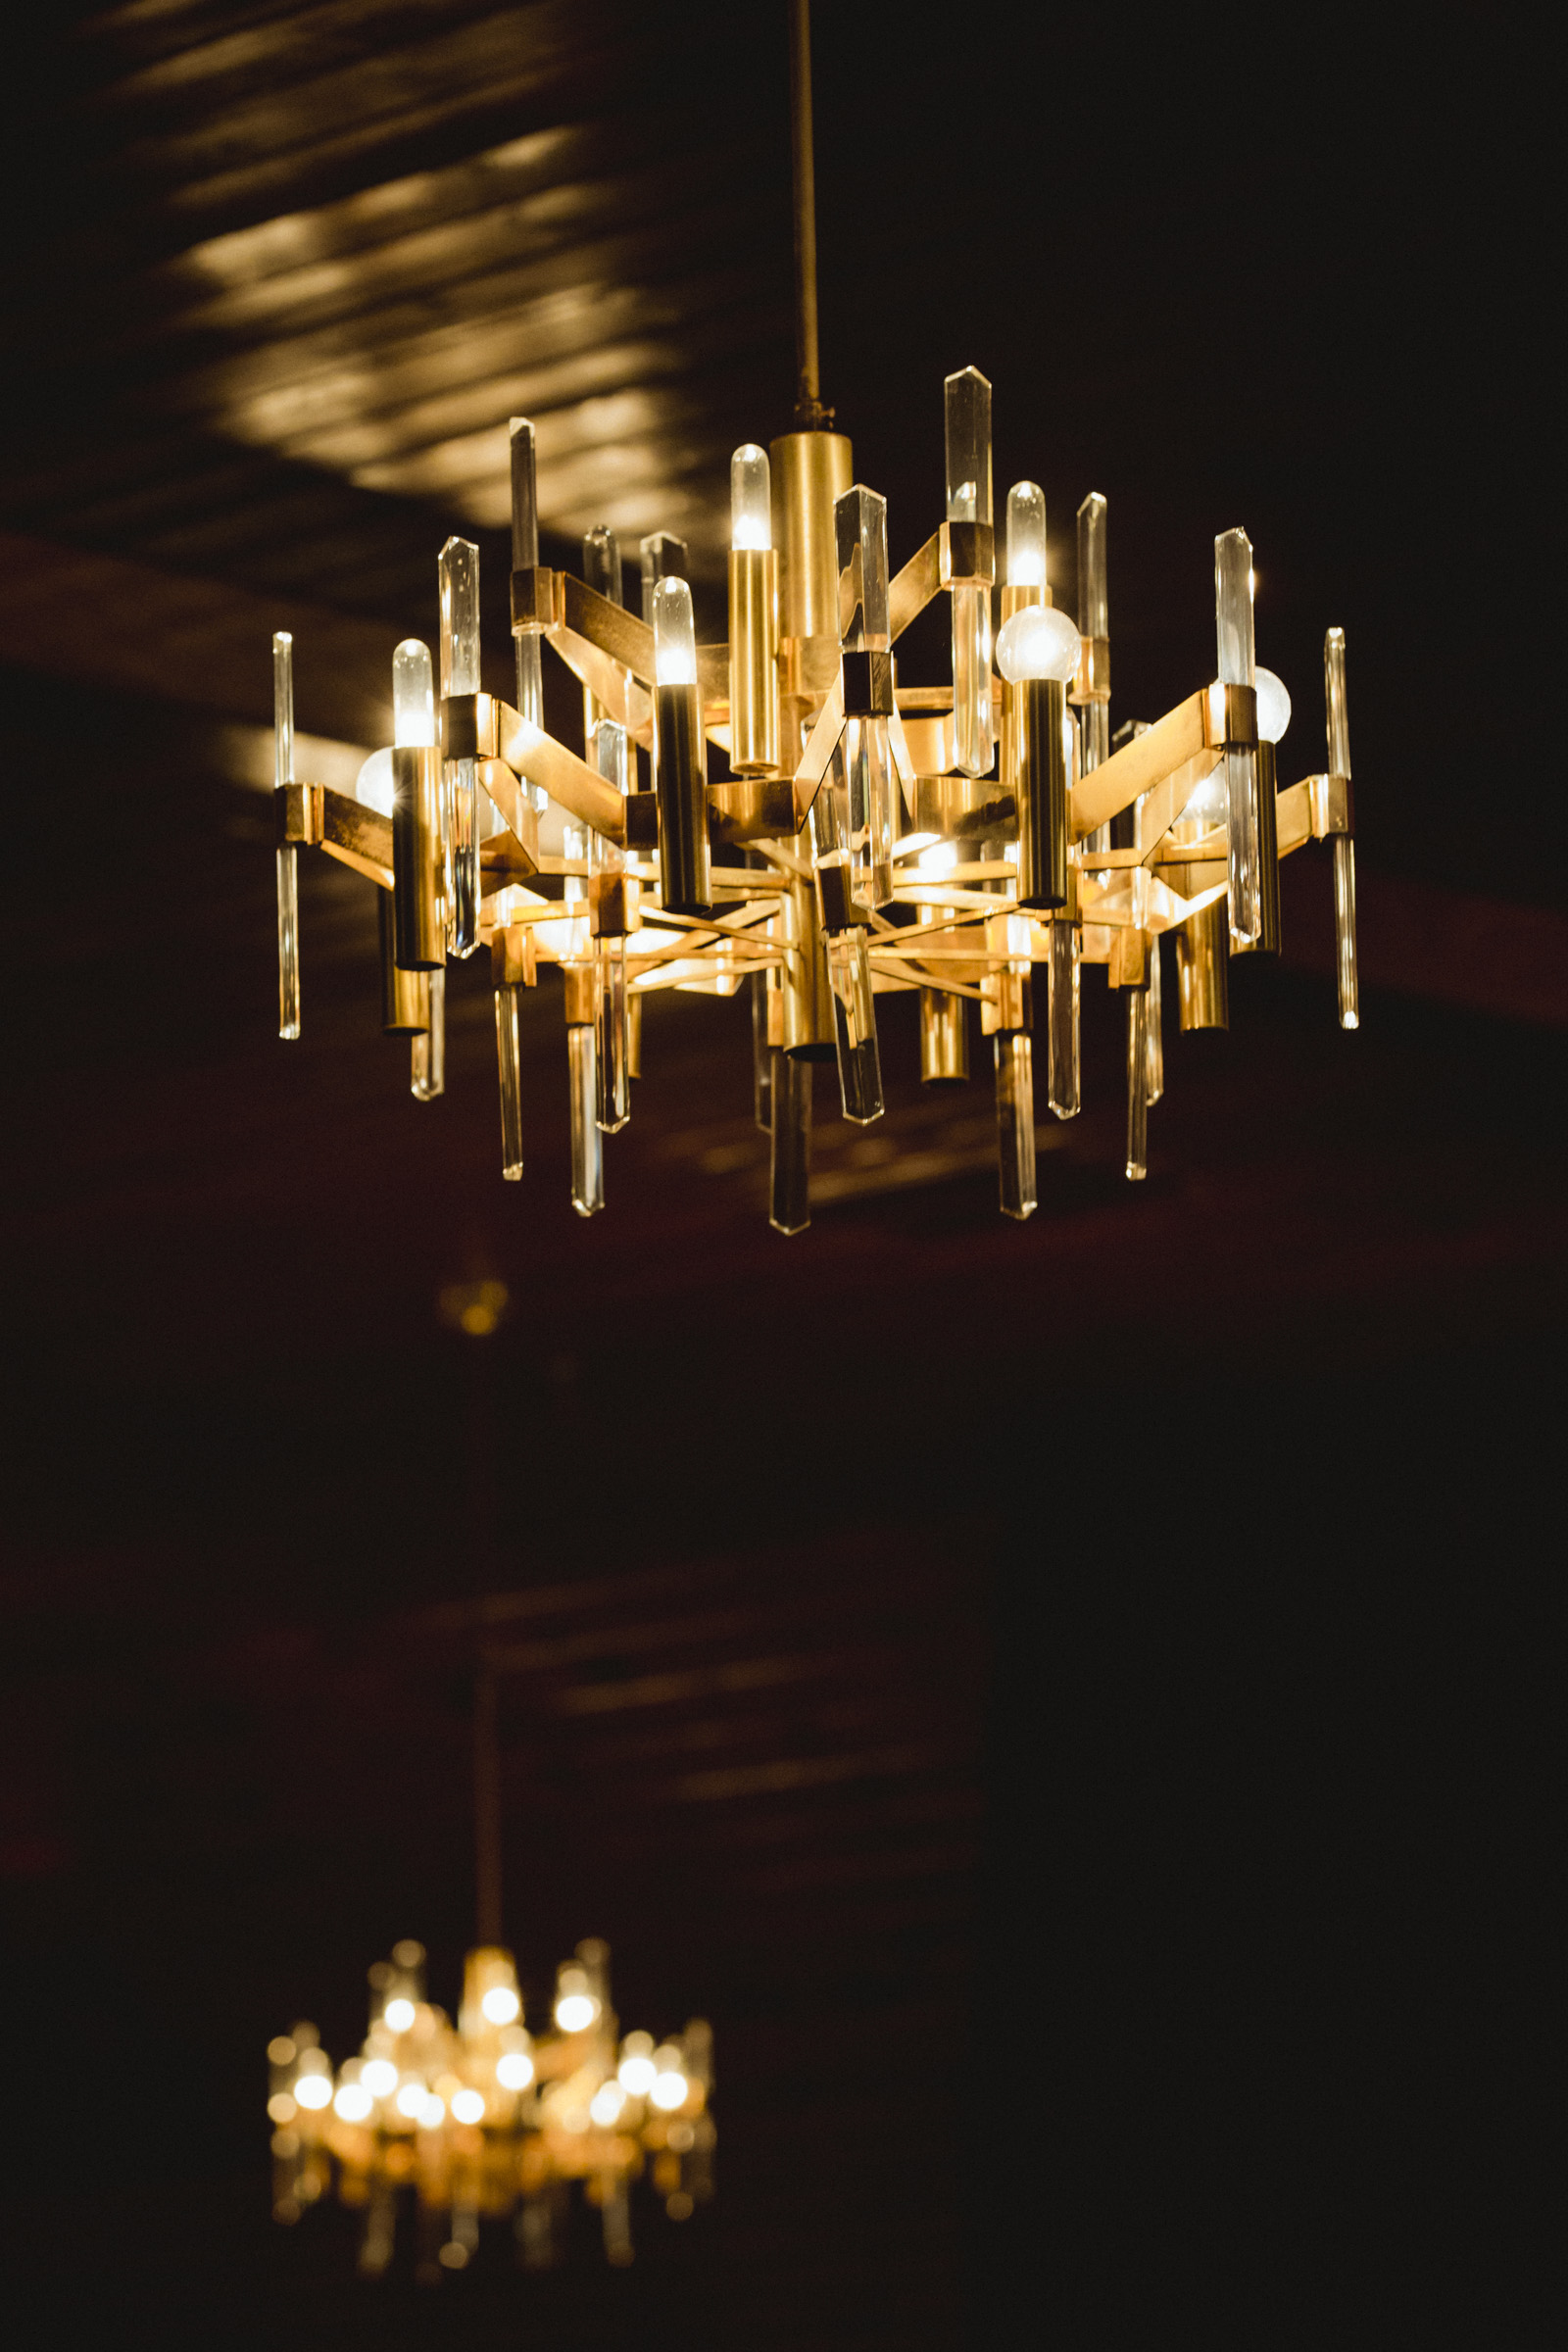 Amy Sims Photography | Chandelier detail from Greater St. Stephen United Church of God | New York Wedding Photographer | Brooklyn Church Wedding